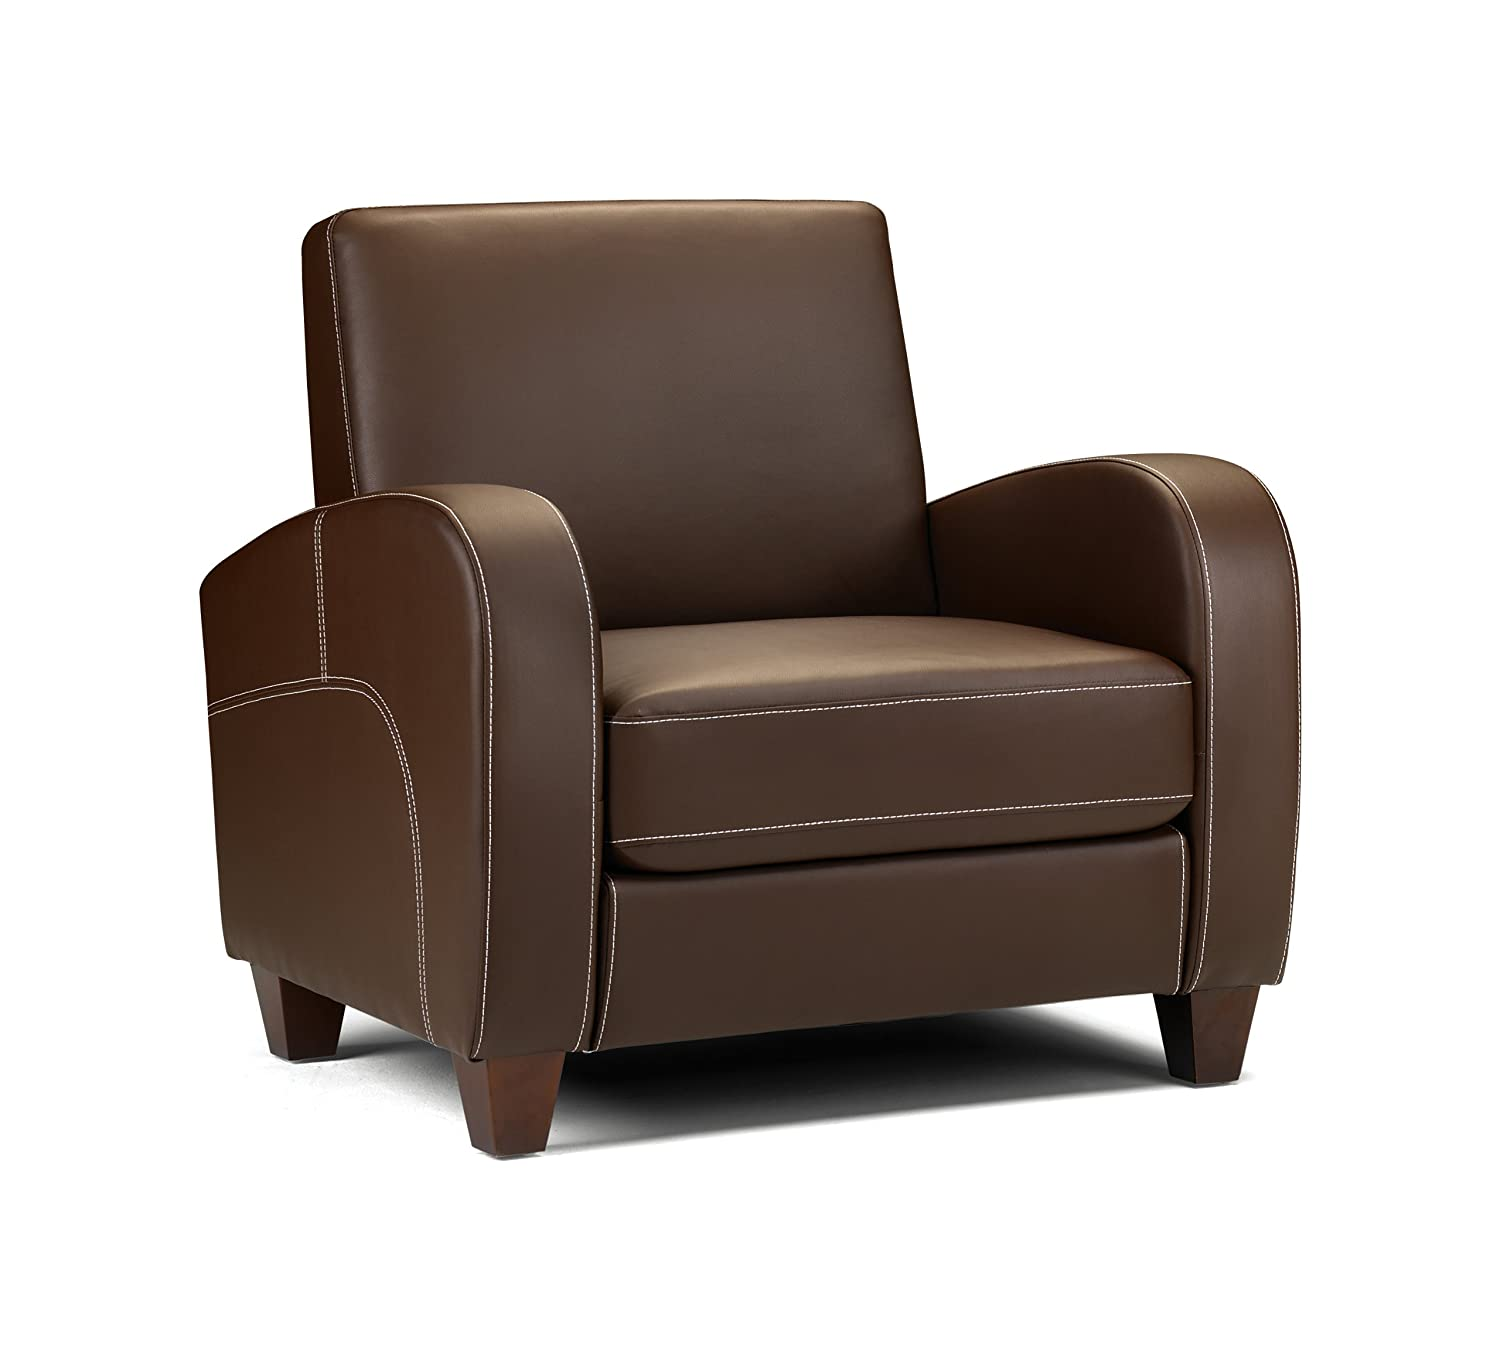 Julian Bowen Vivo Chair Faux Leather Brown Amazon